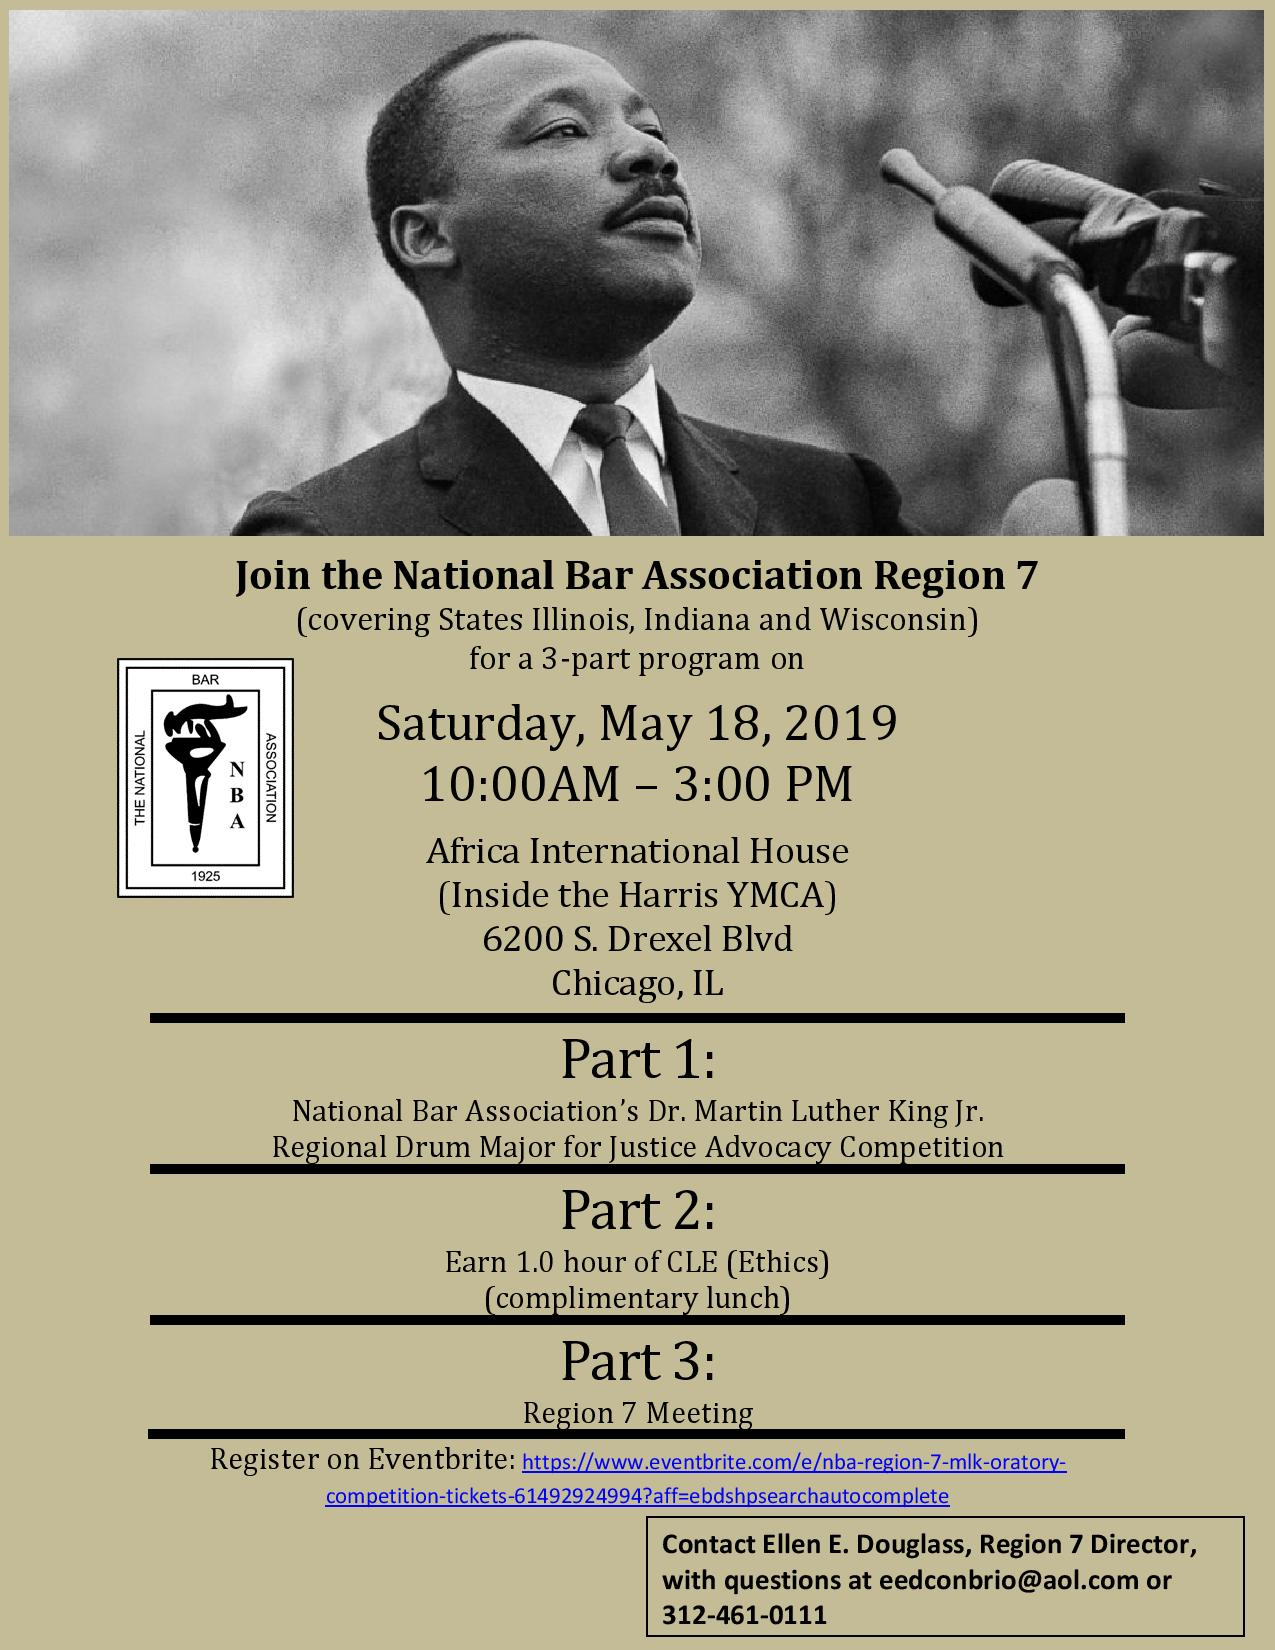 Join the National Bar Association     Region 7 for the 3-page-001.jpg